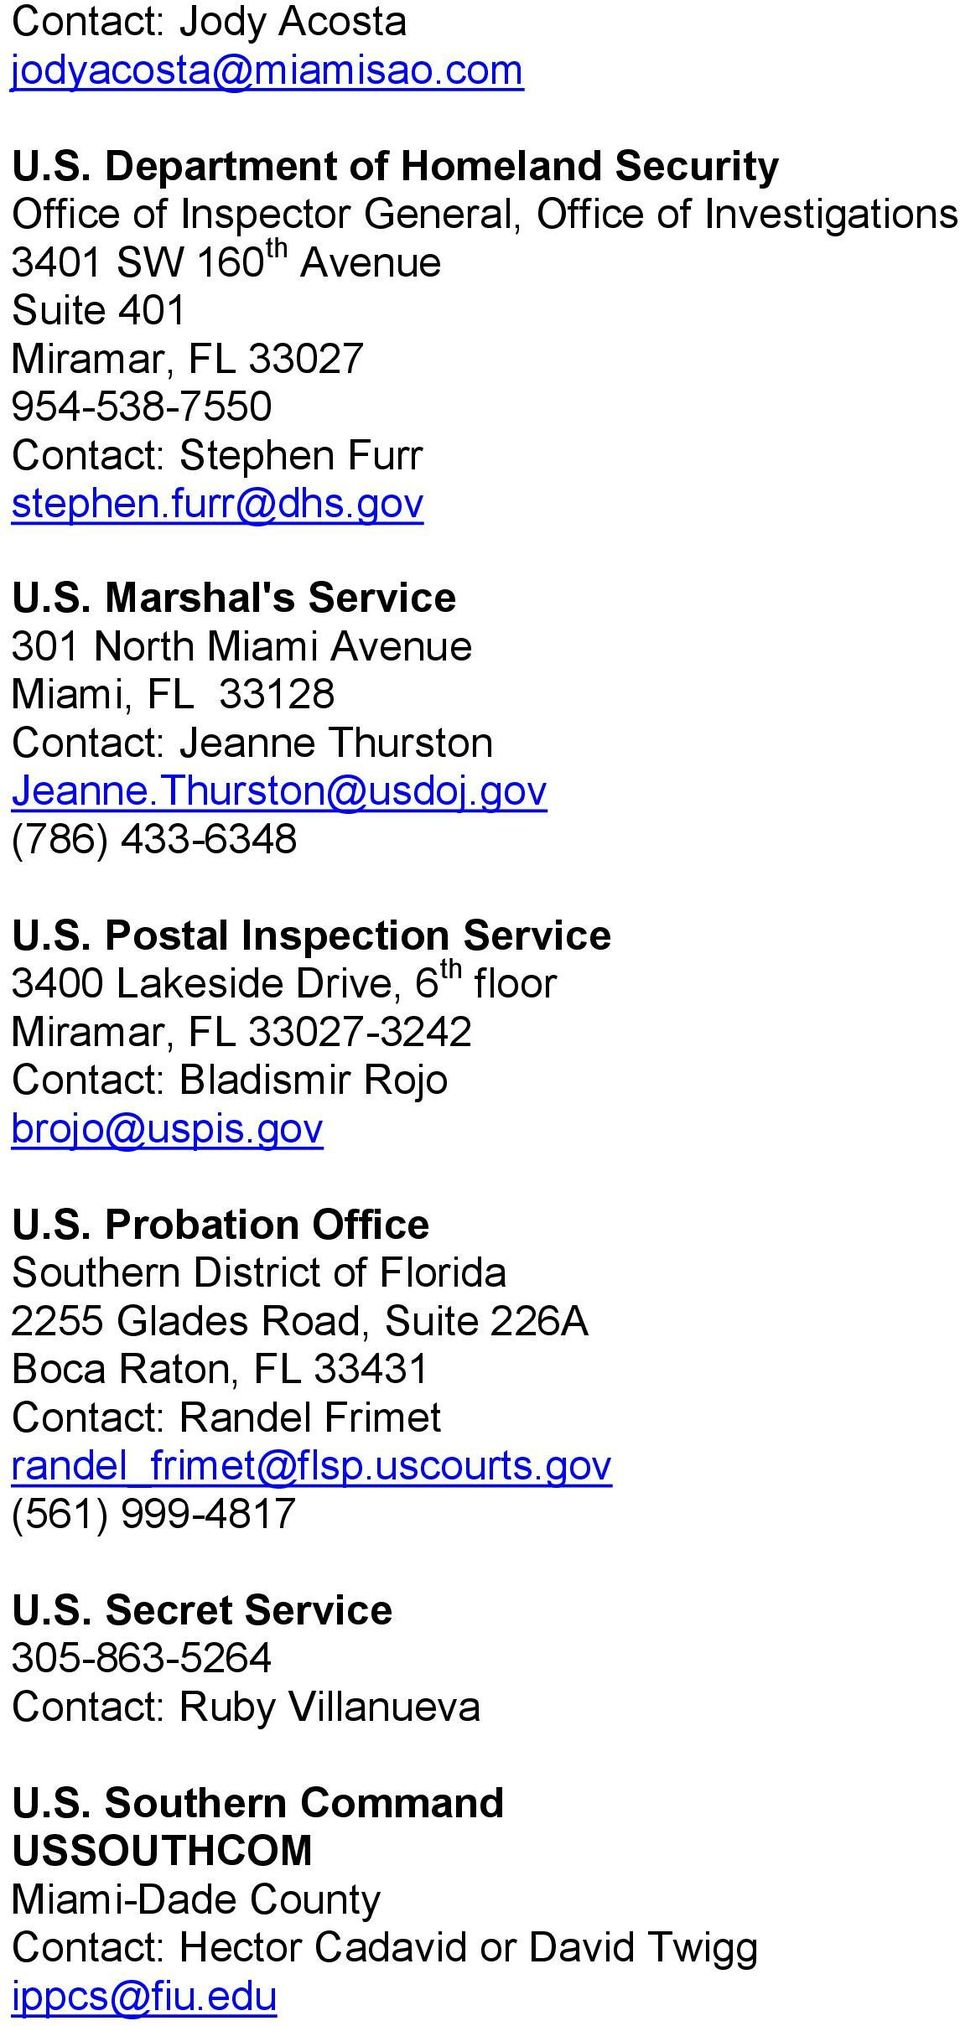 Thurston@usdoj.gov (786) 433-6348 U.S. Postal Inspection Service 3400 Lakeside Drive, 6 th floor Miramar, FL 33027-3242 Contact: Bladismir Rojo brojo@uspis.gov U.S. Probation Office Southern District of Florida 2255 Glades Road, Suite 226A Boca Raton, FL 33431 Contact: Randel Frimet randel_frimet@flsp.